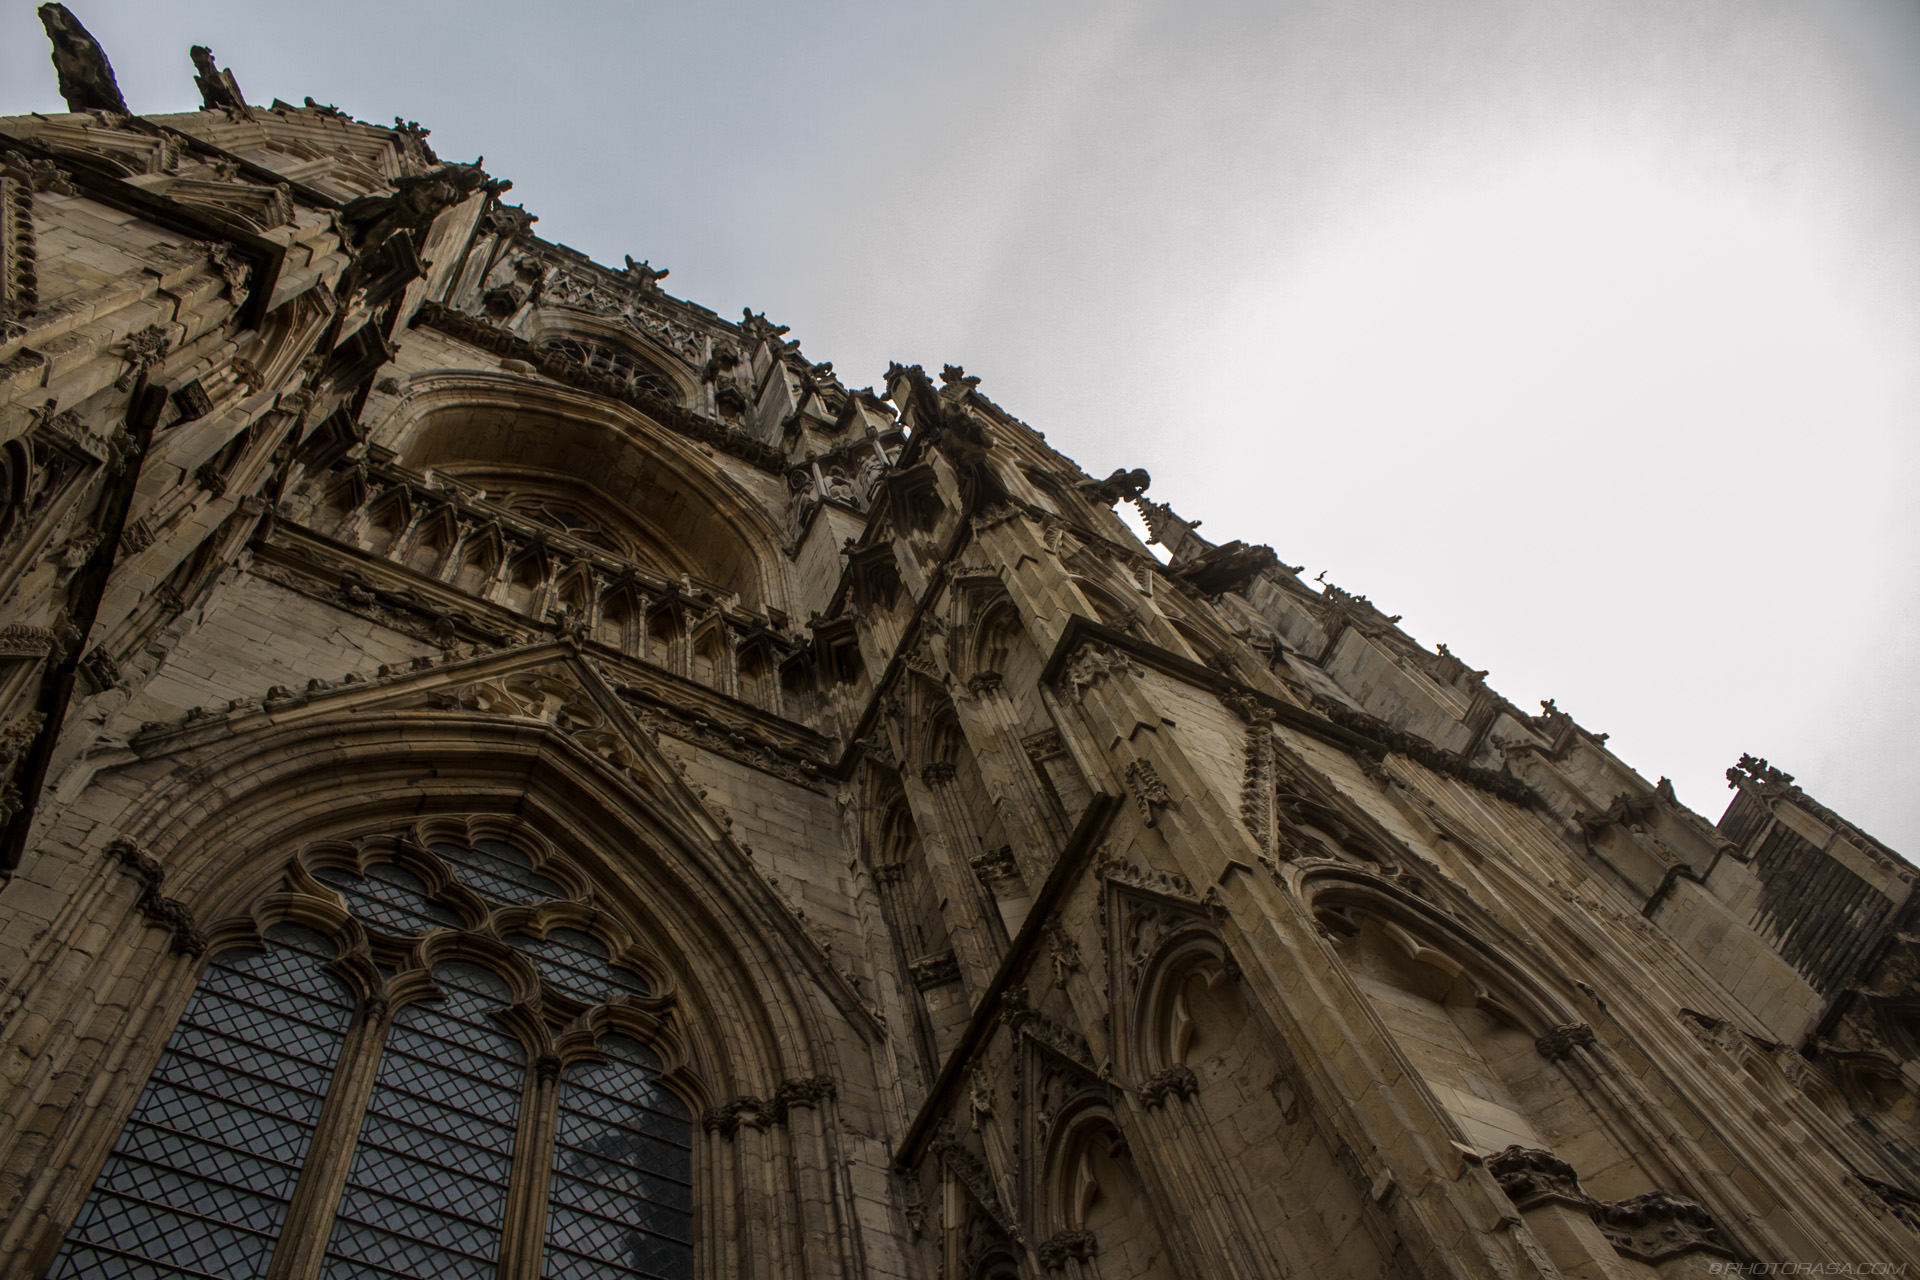 http://photorasa.com/yorkminster-cathedral/cathedral-detail-and-sky/